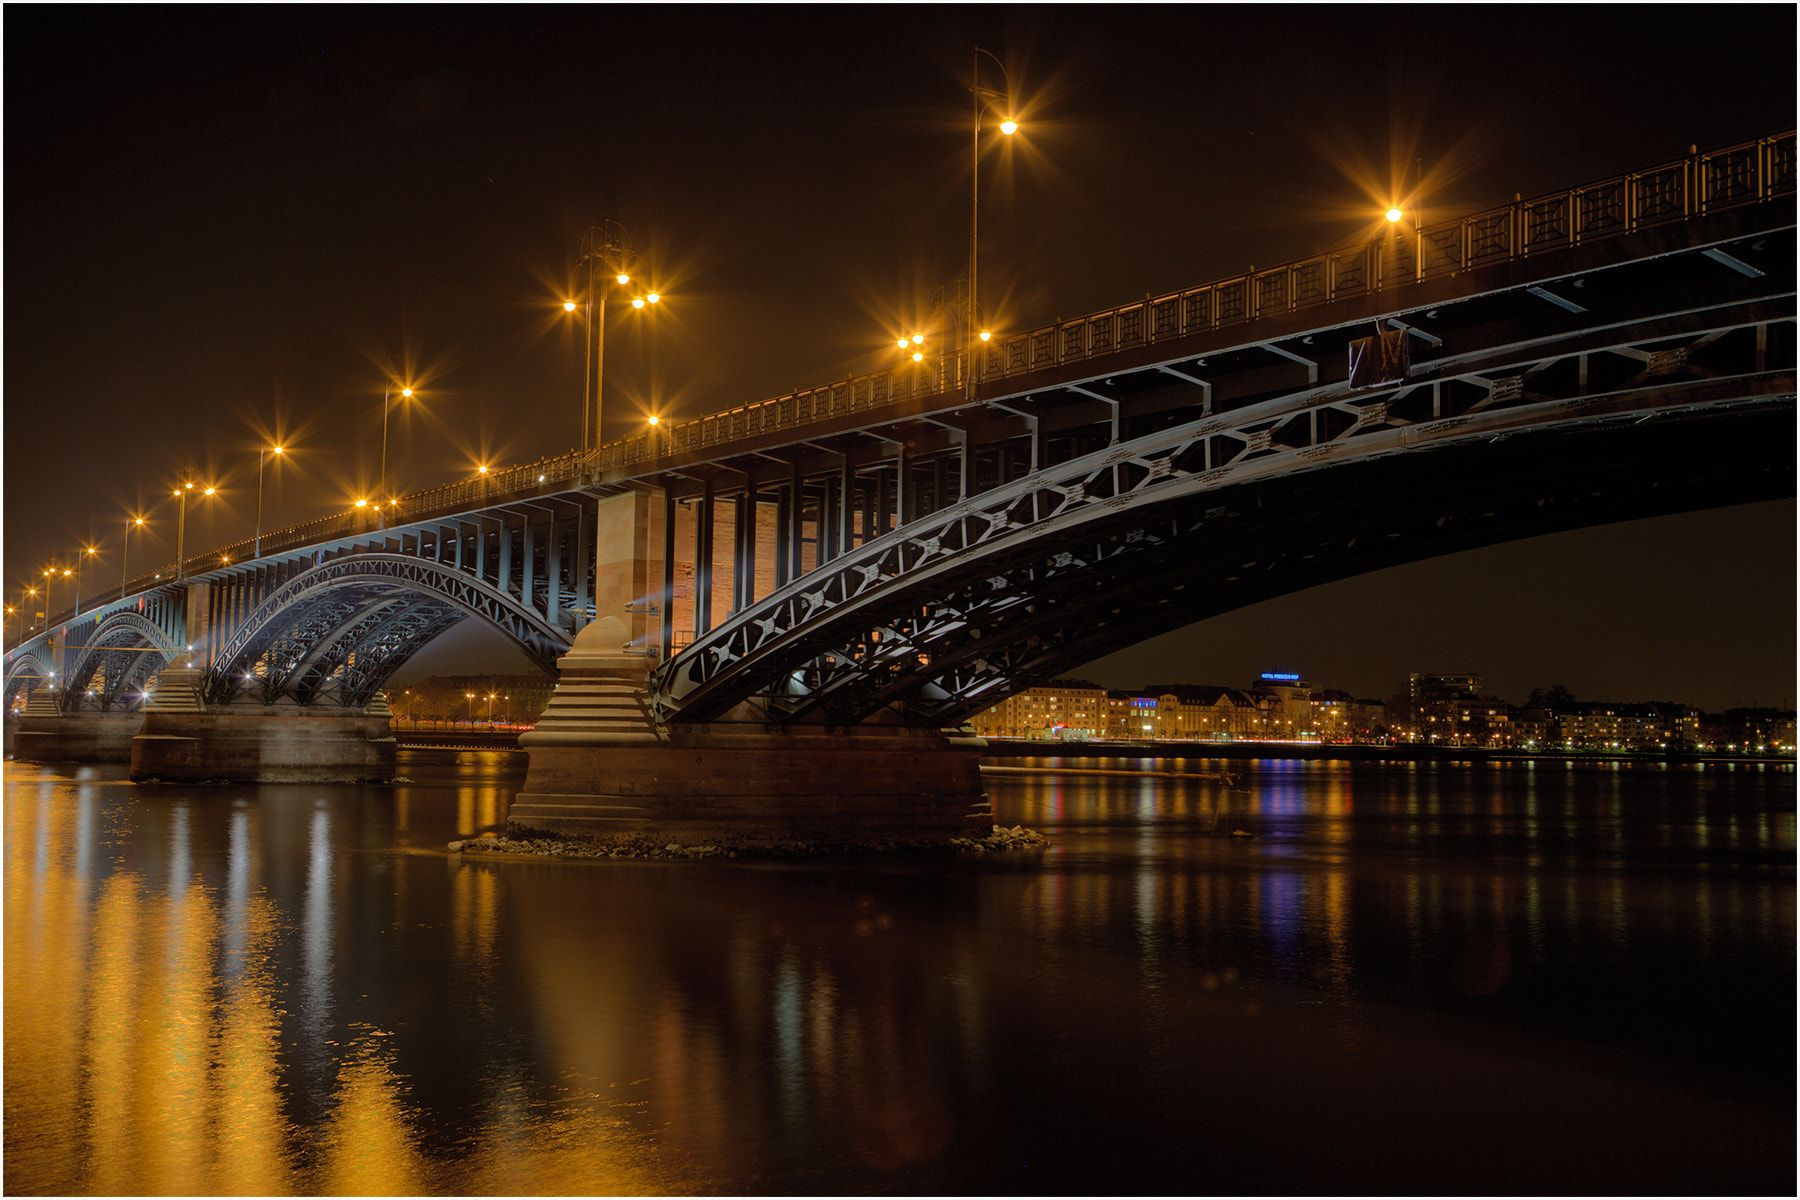 Mainz Theodor Heuss Brucke I Took This Photo On A Business Trip To Mainz After Sunset